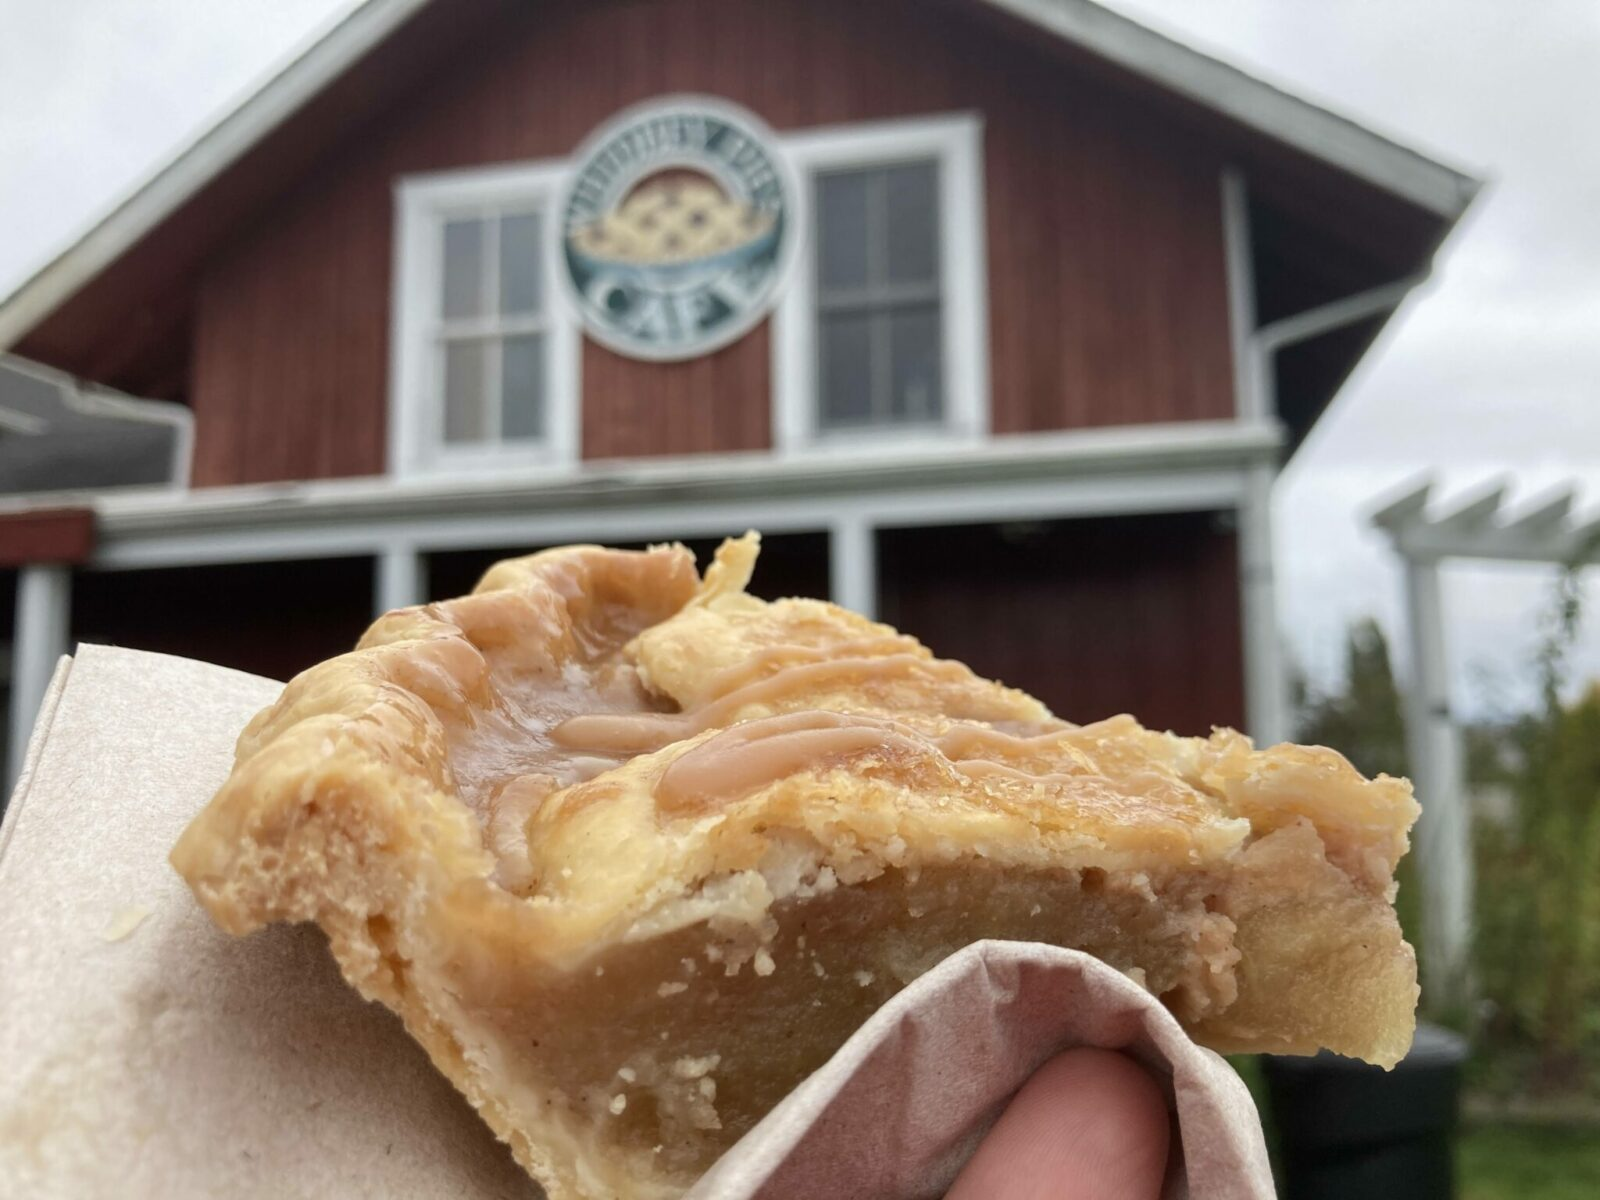 a close up of a slice of pie. A person is holding it in a napkin and there is a blurry barn red building behind